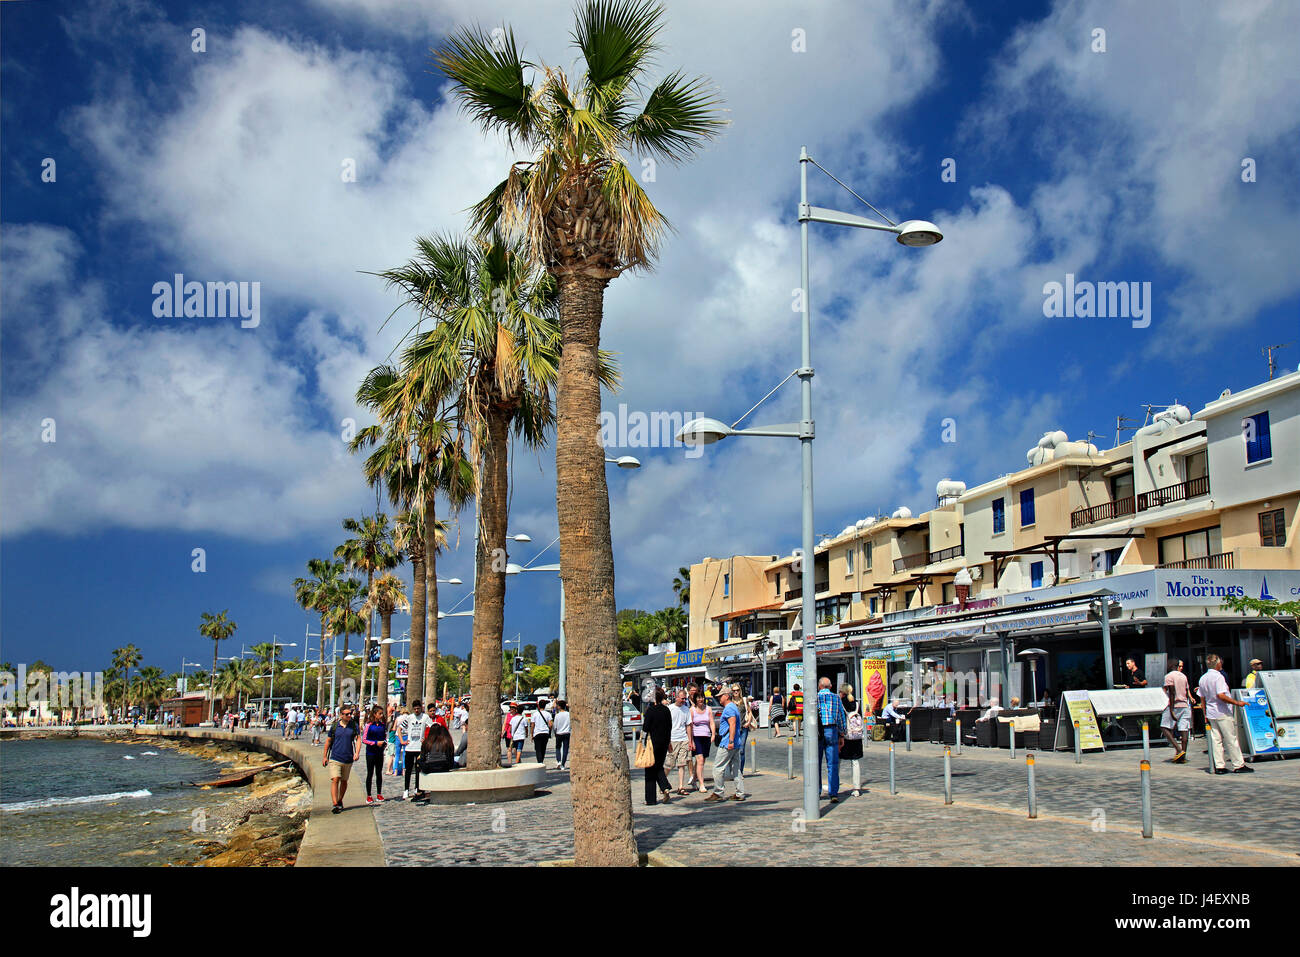 Walking at the promenade of Kato Paphos, Cyprus. - Stock Image